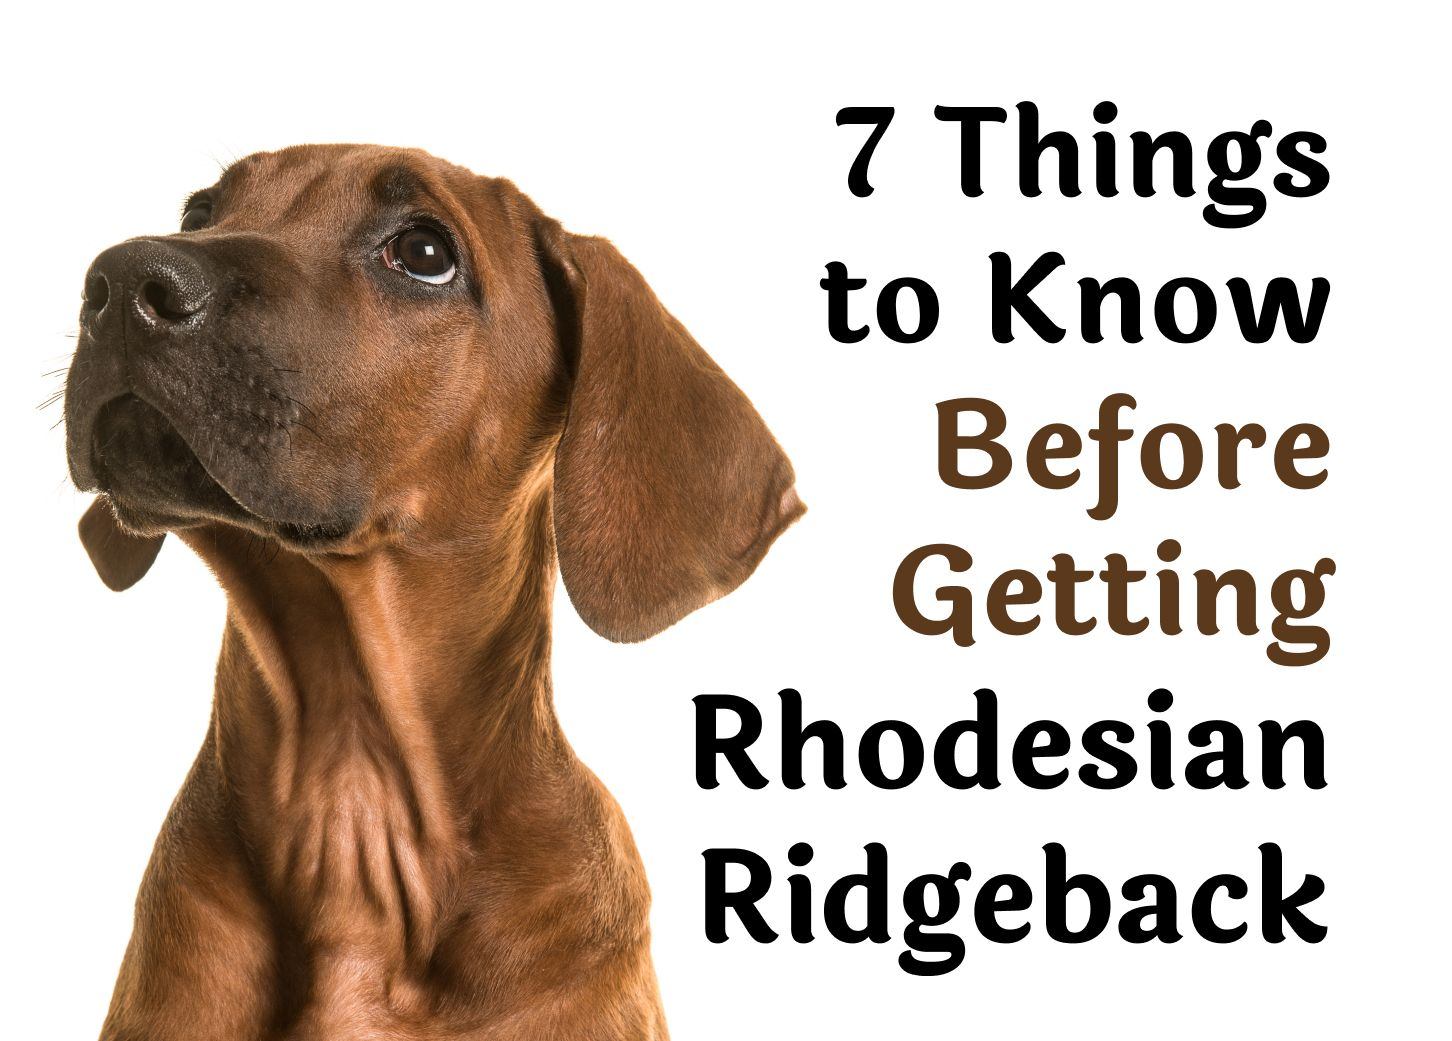 7 Things To Know Before Getting A Rhodesian Ridgeback